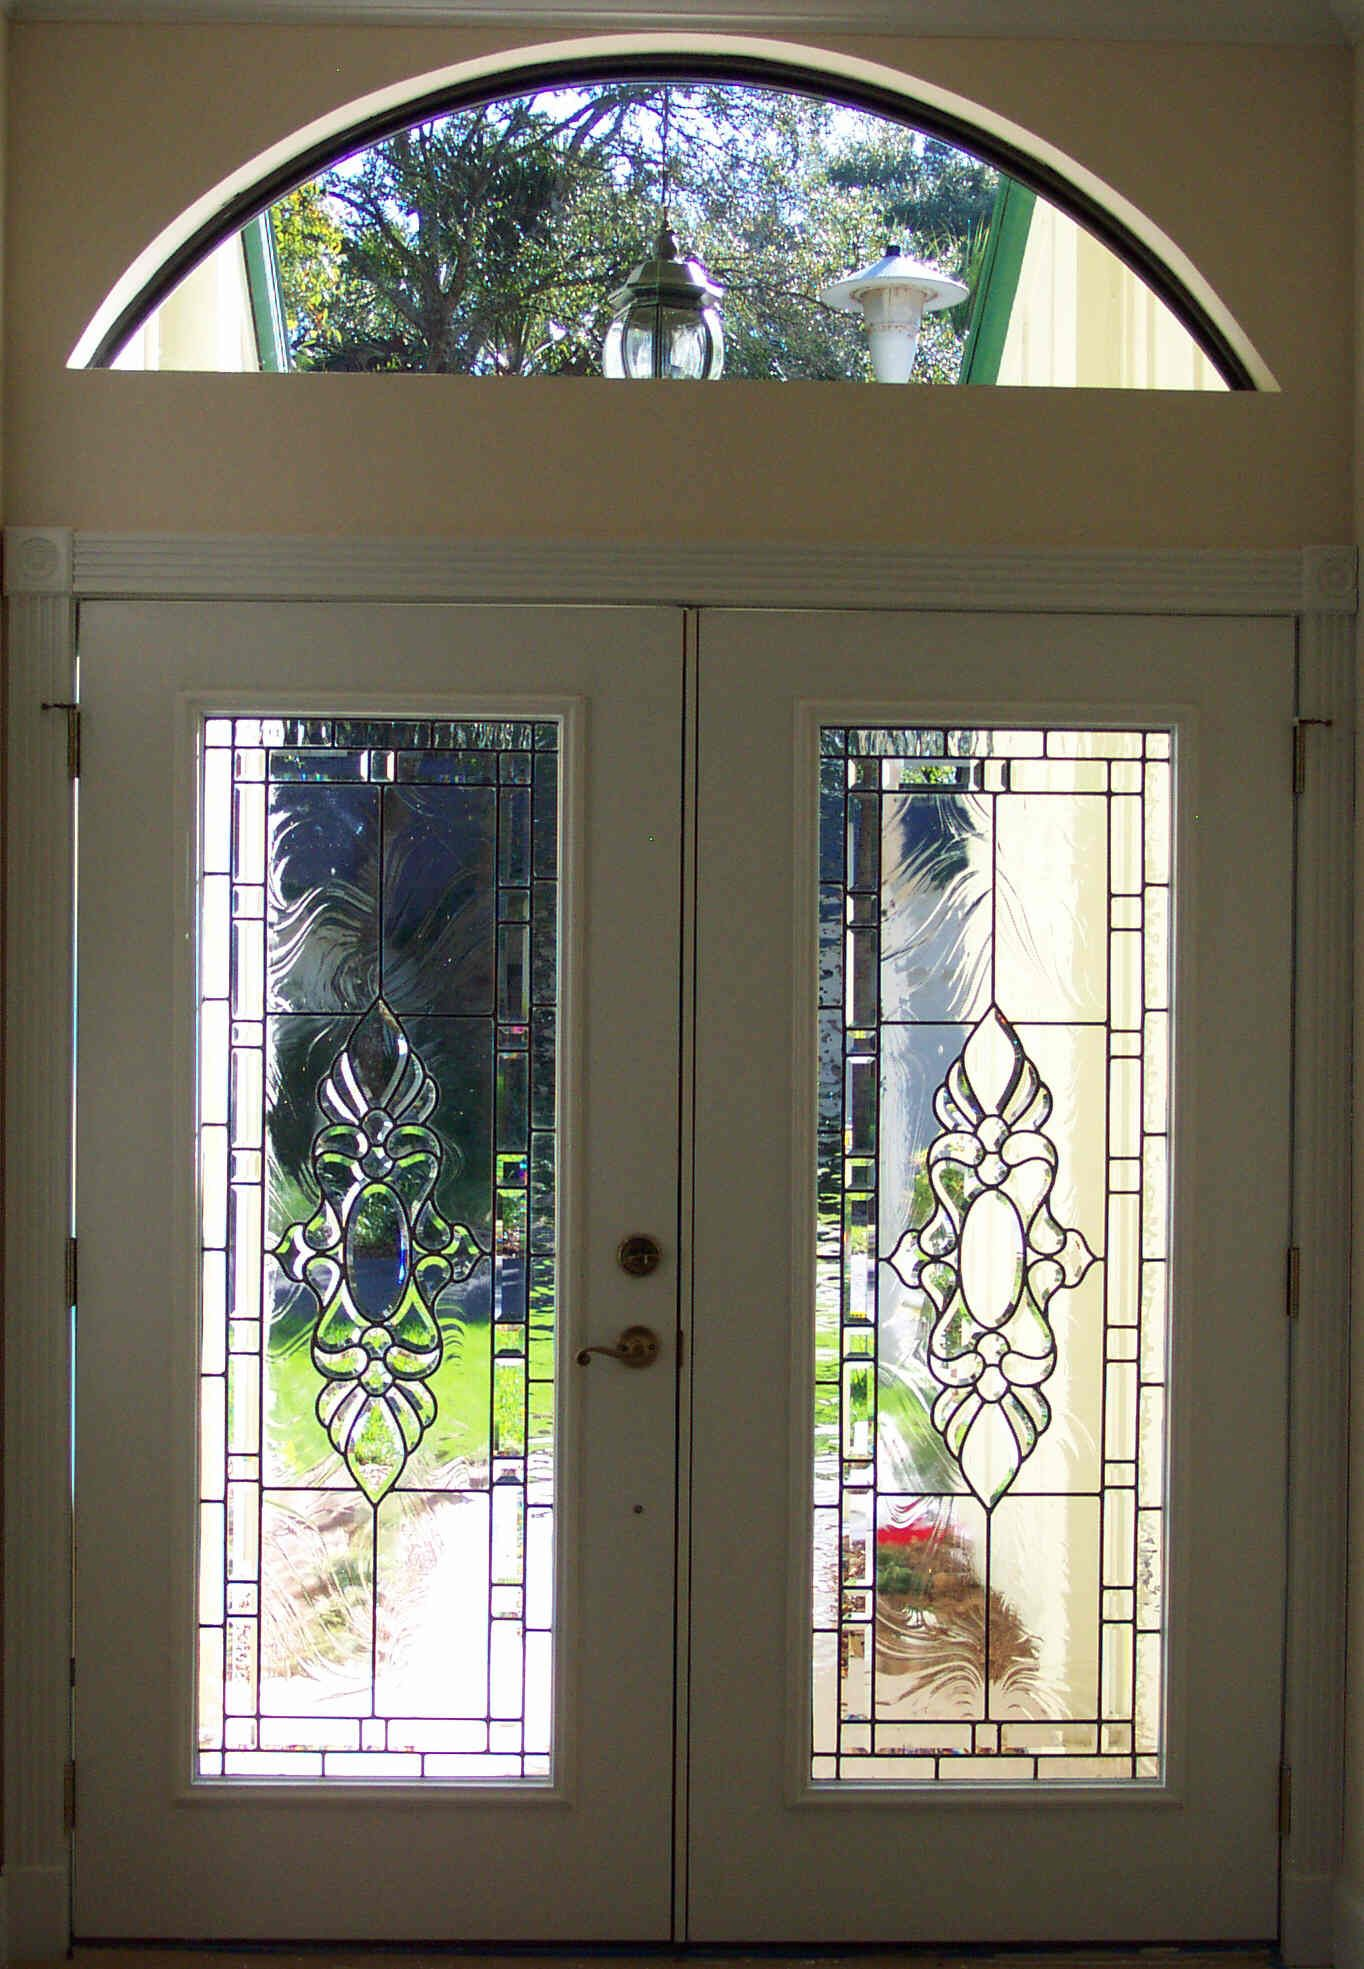 Custom beveled glass door inserts for front entry created by custom beveled glass door inserts for front entry created by designer art glass daytona beach planetlyrics